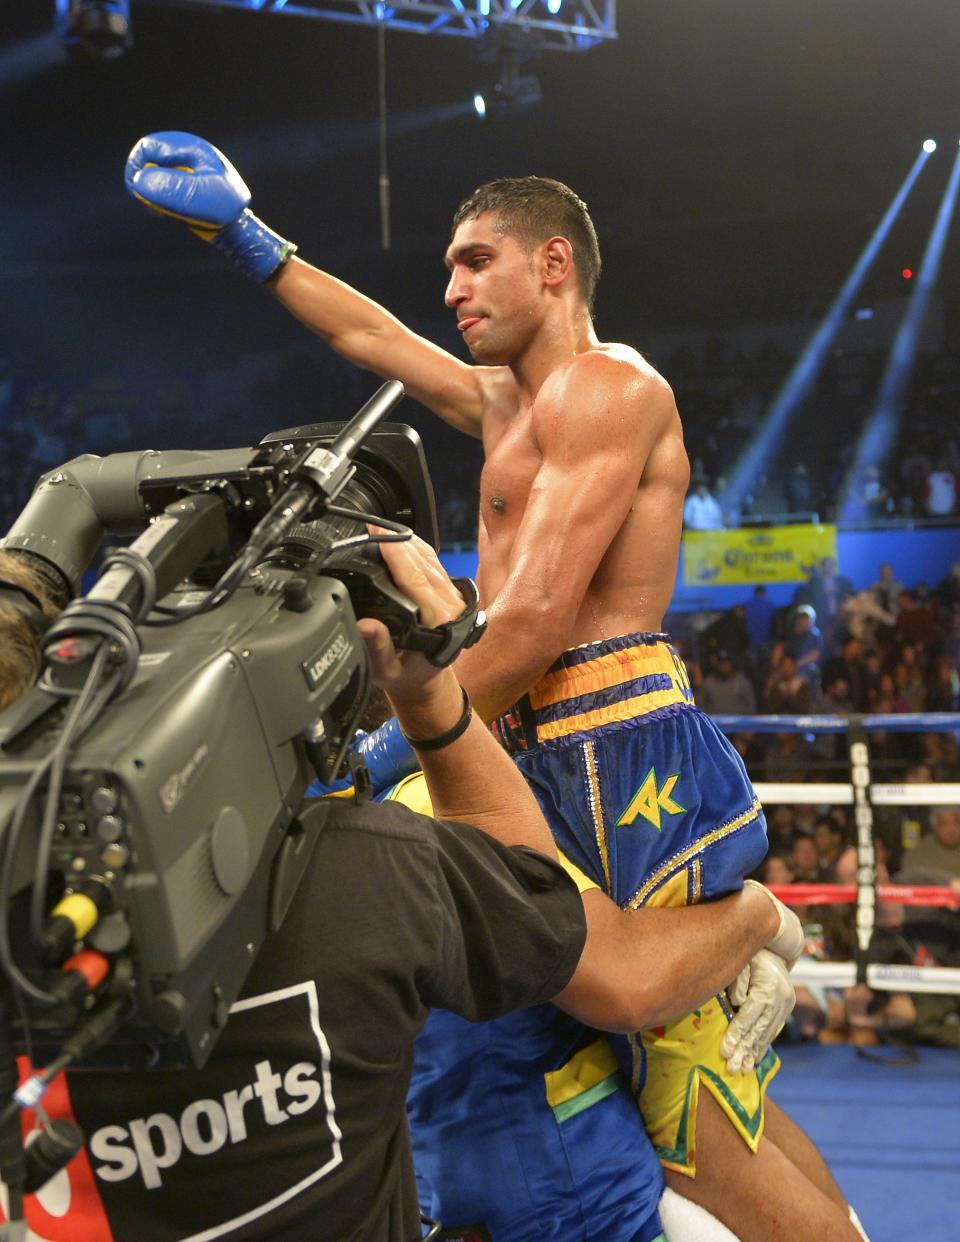 Amir Khan of Great Britain celebrates ofter winning his fight over Carlos Molina during their WBC silver super lightweight title bout, Saturday, Dec. 15, 2012, in Los Angeles.  (AP Photo/Mark J. Terrill)